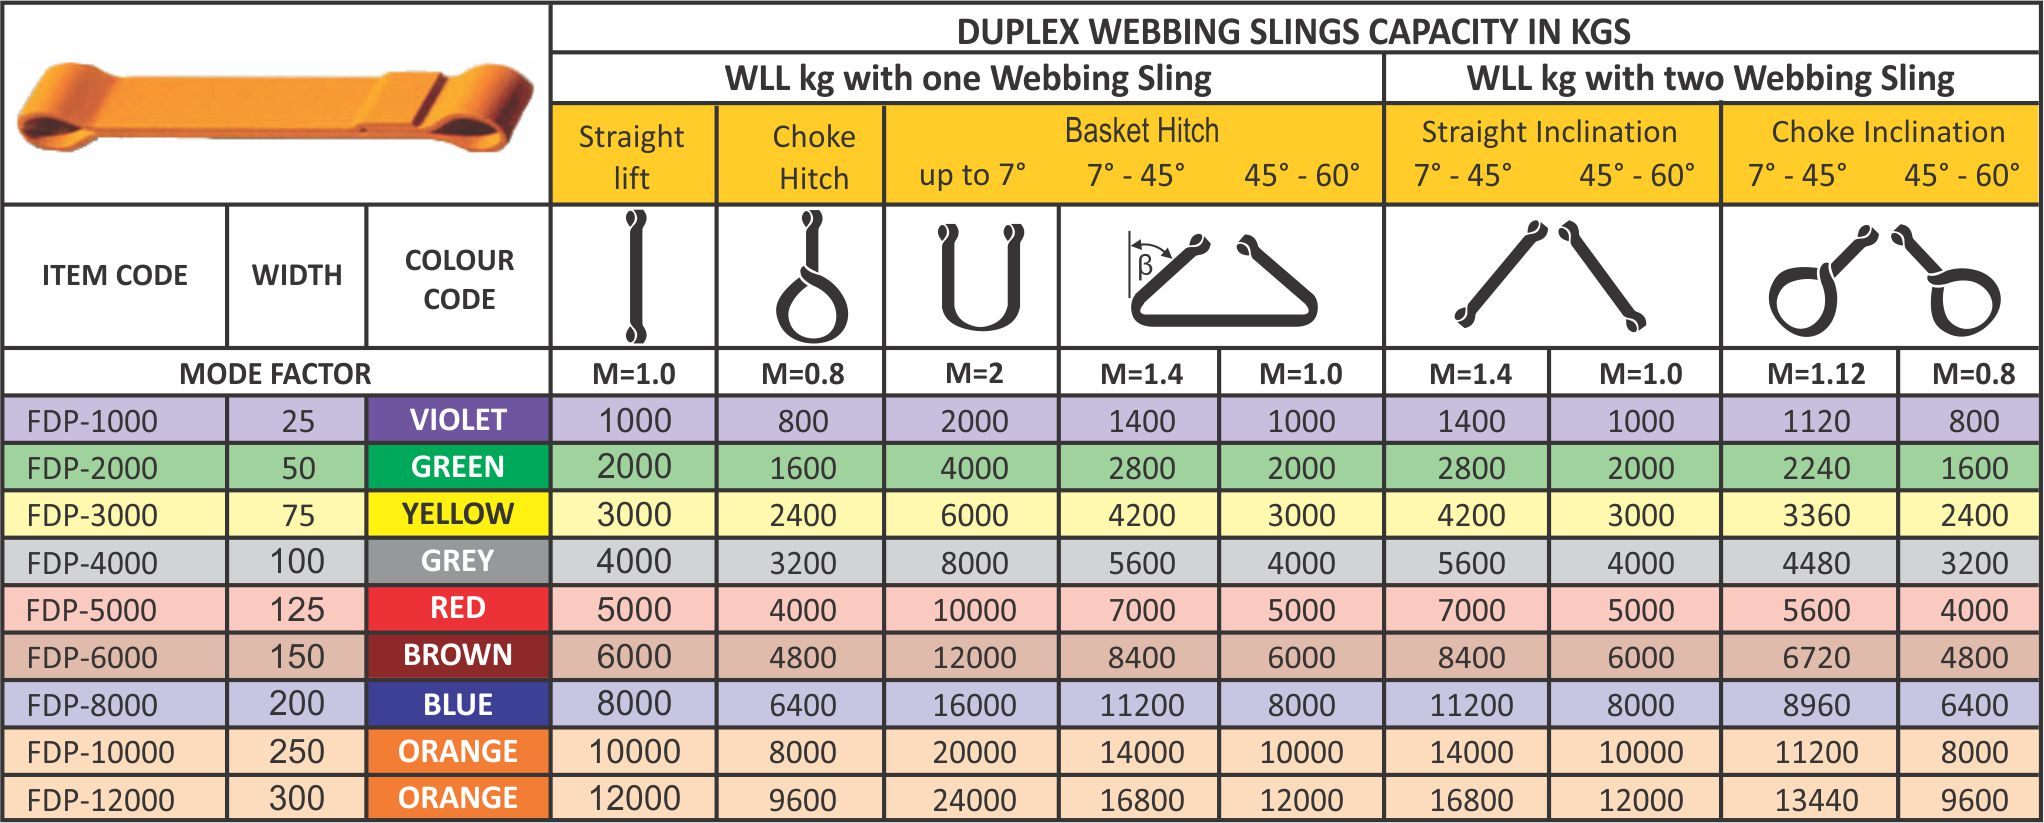 Duplex Webbing Slings Pricing